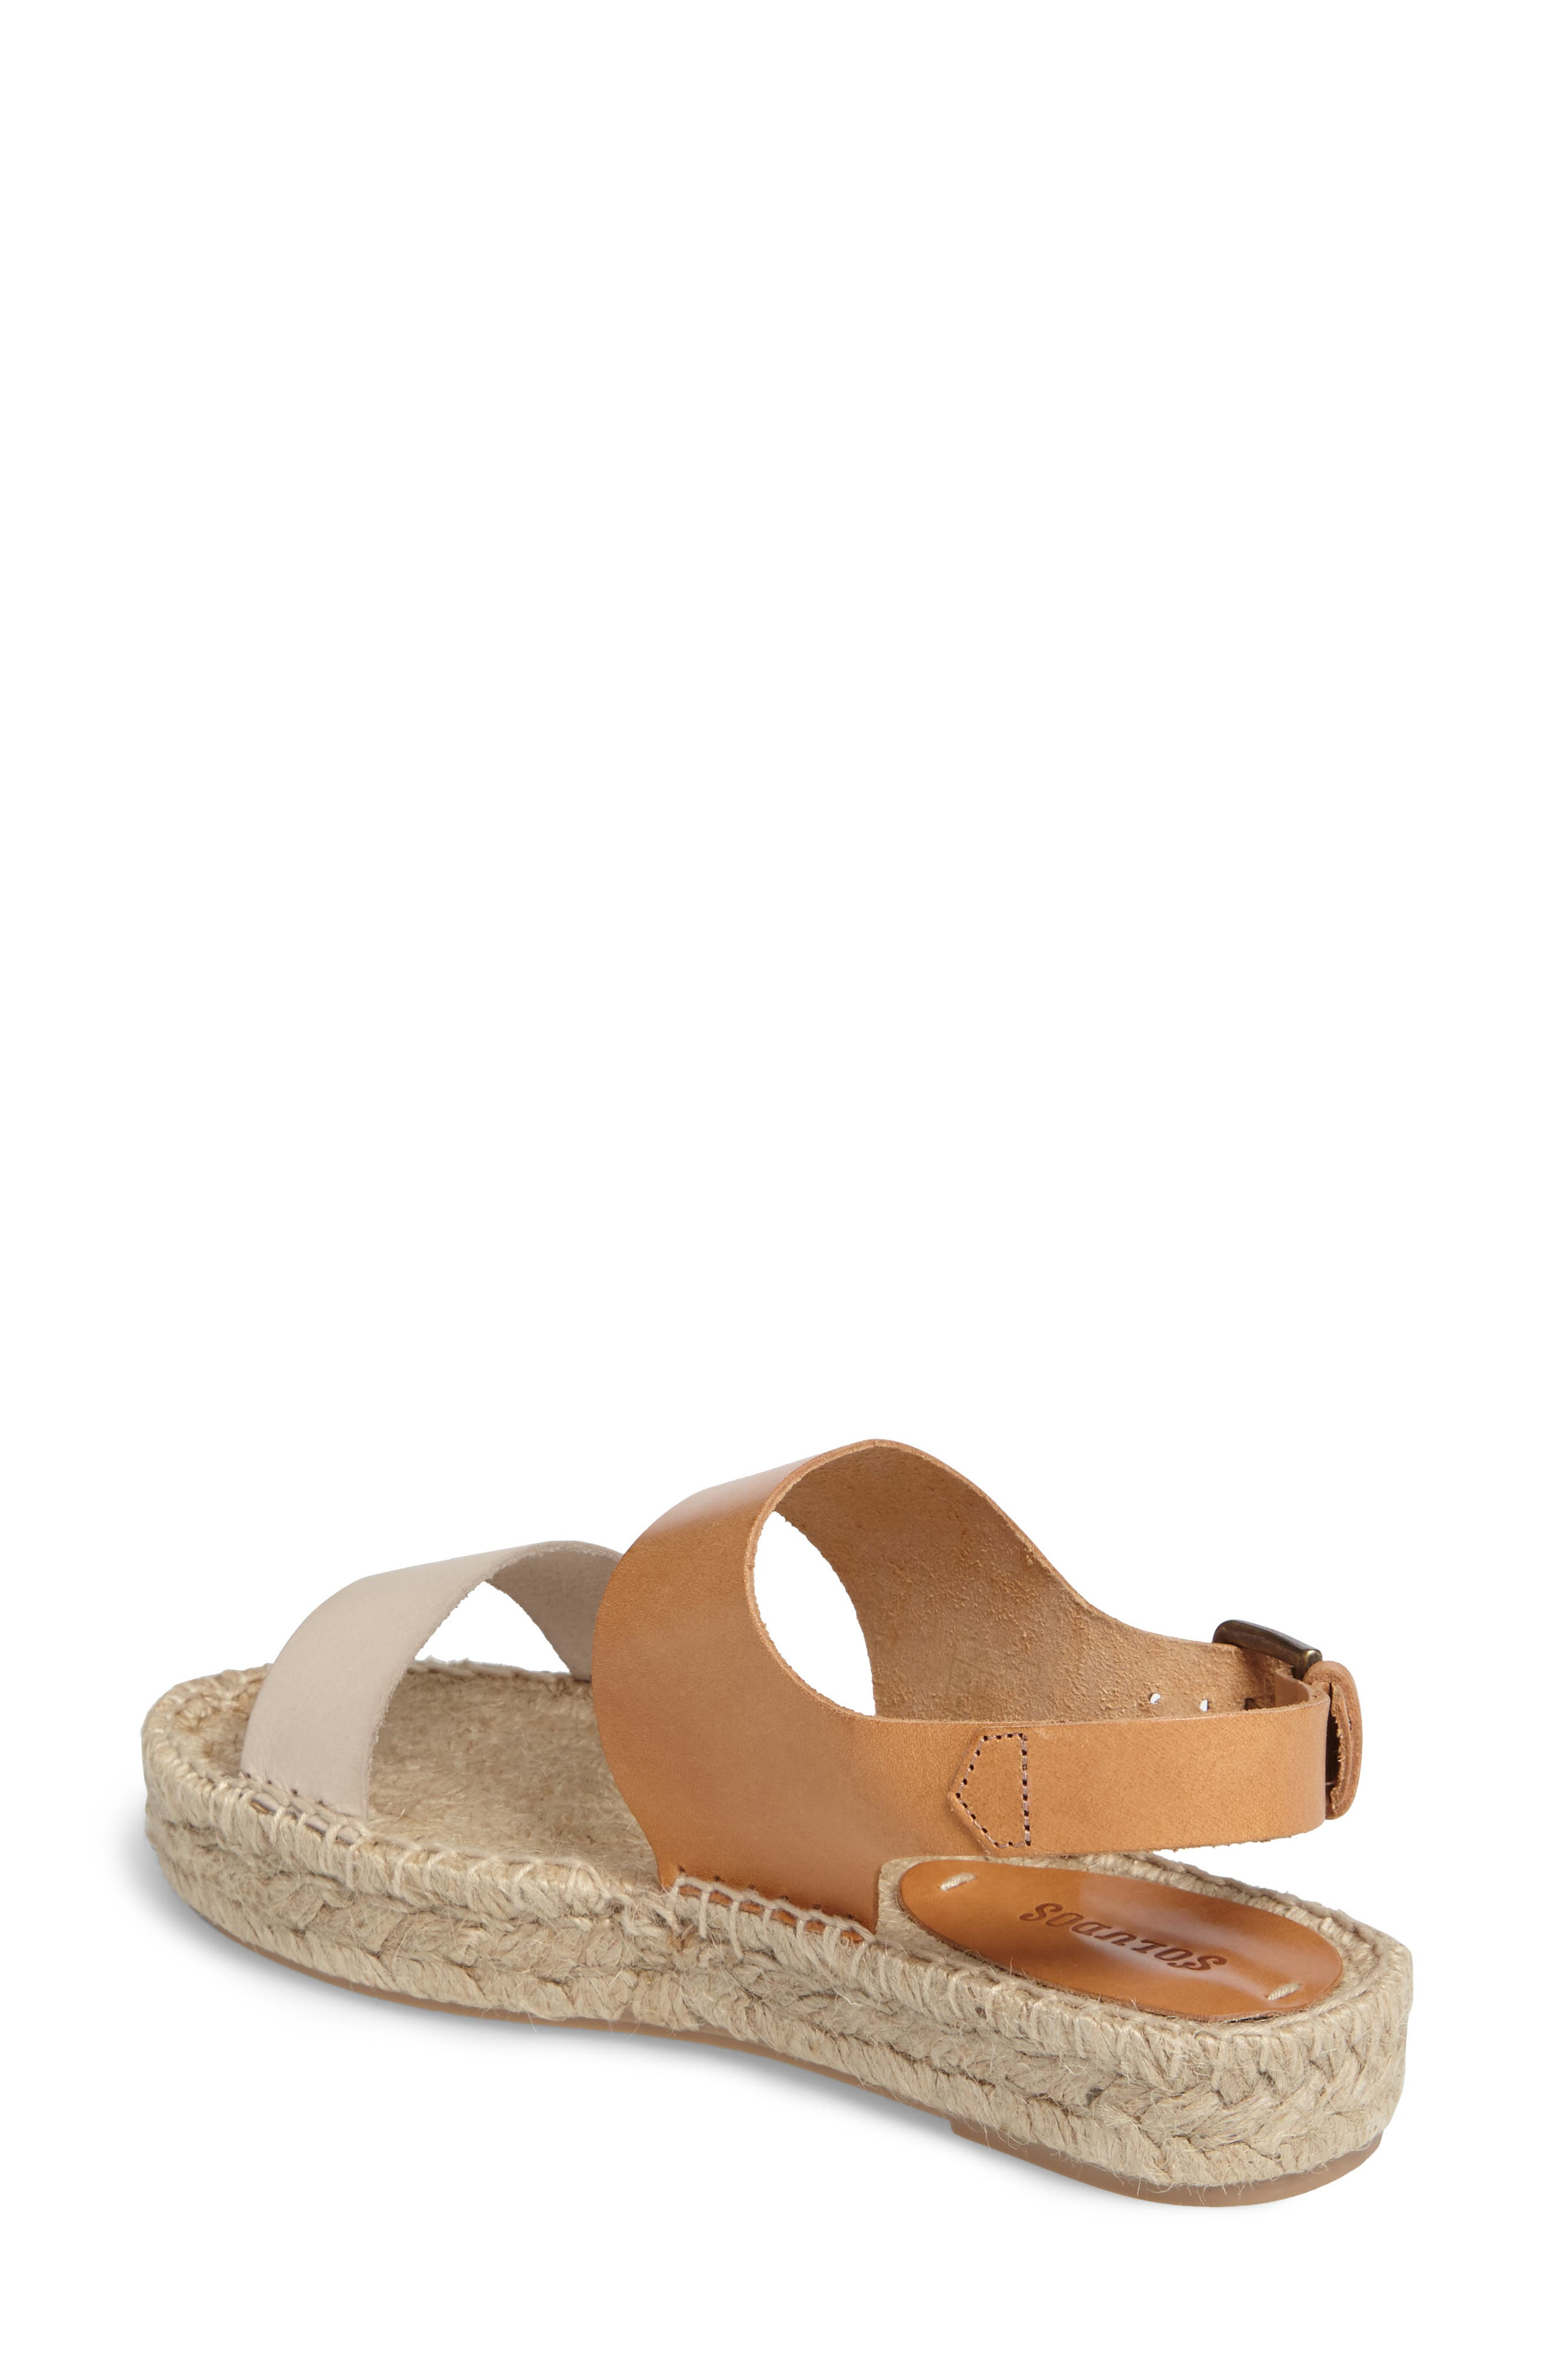 Platform Espadrille Sandal,                             Alternate thumbnail 2, color,                             250